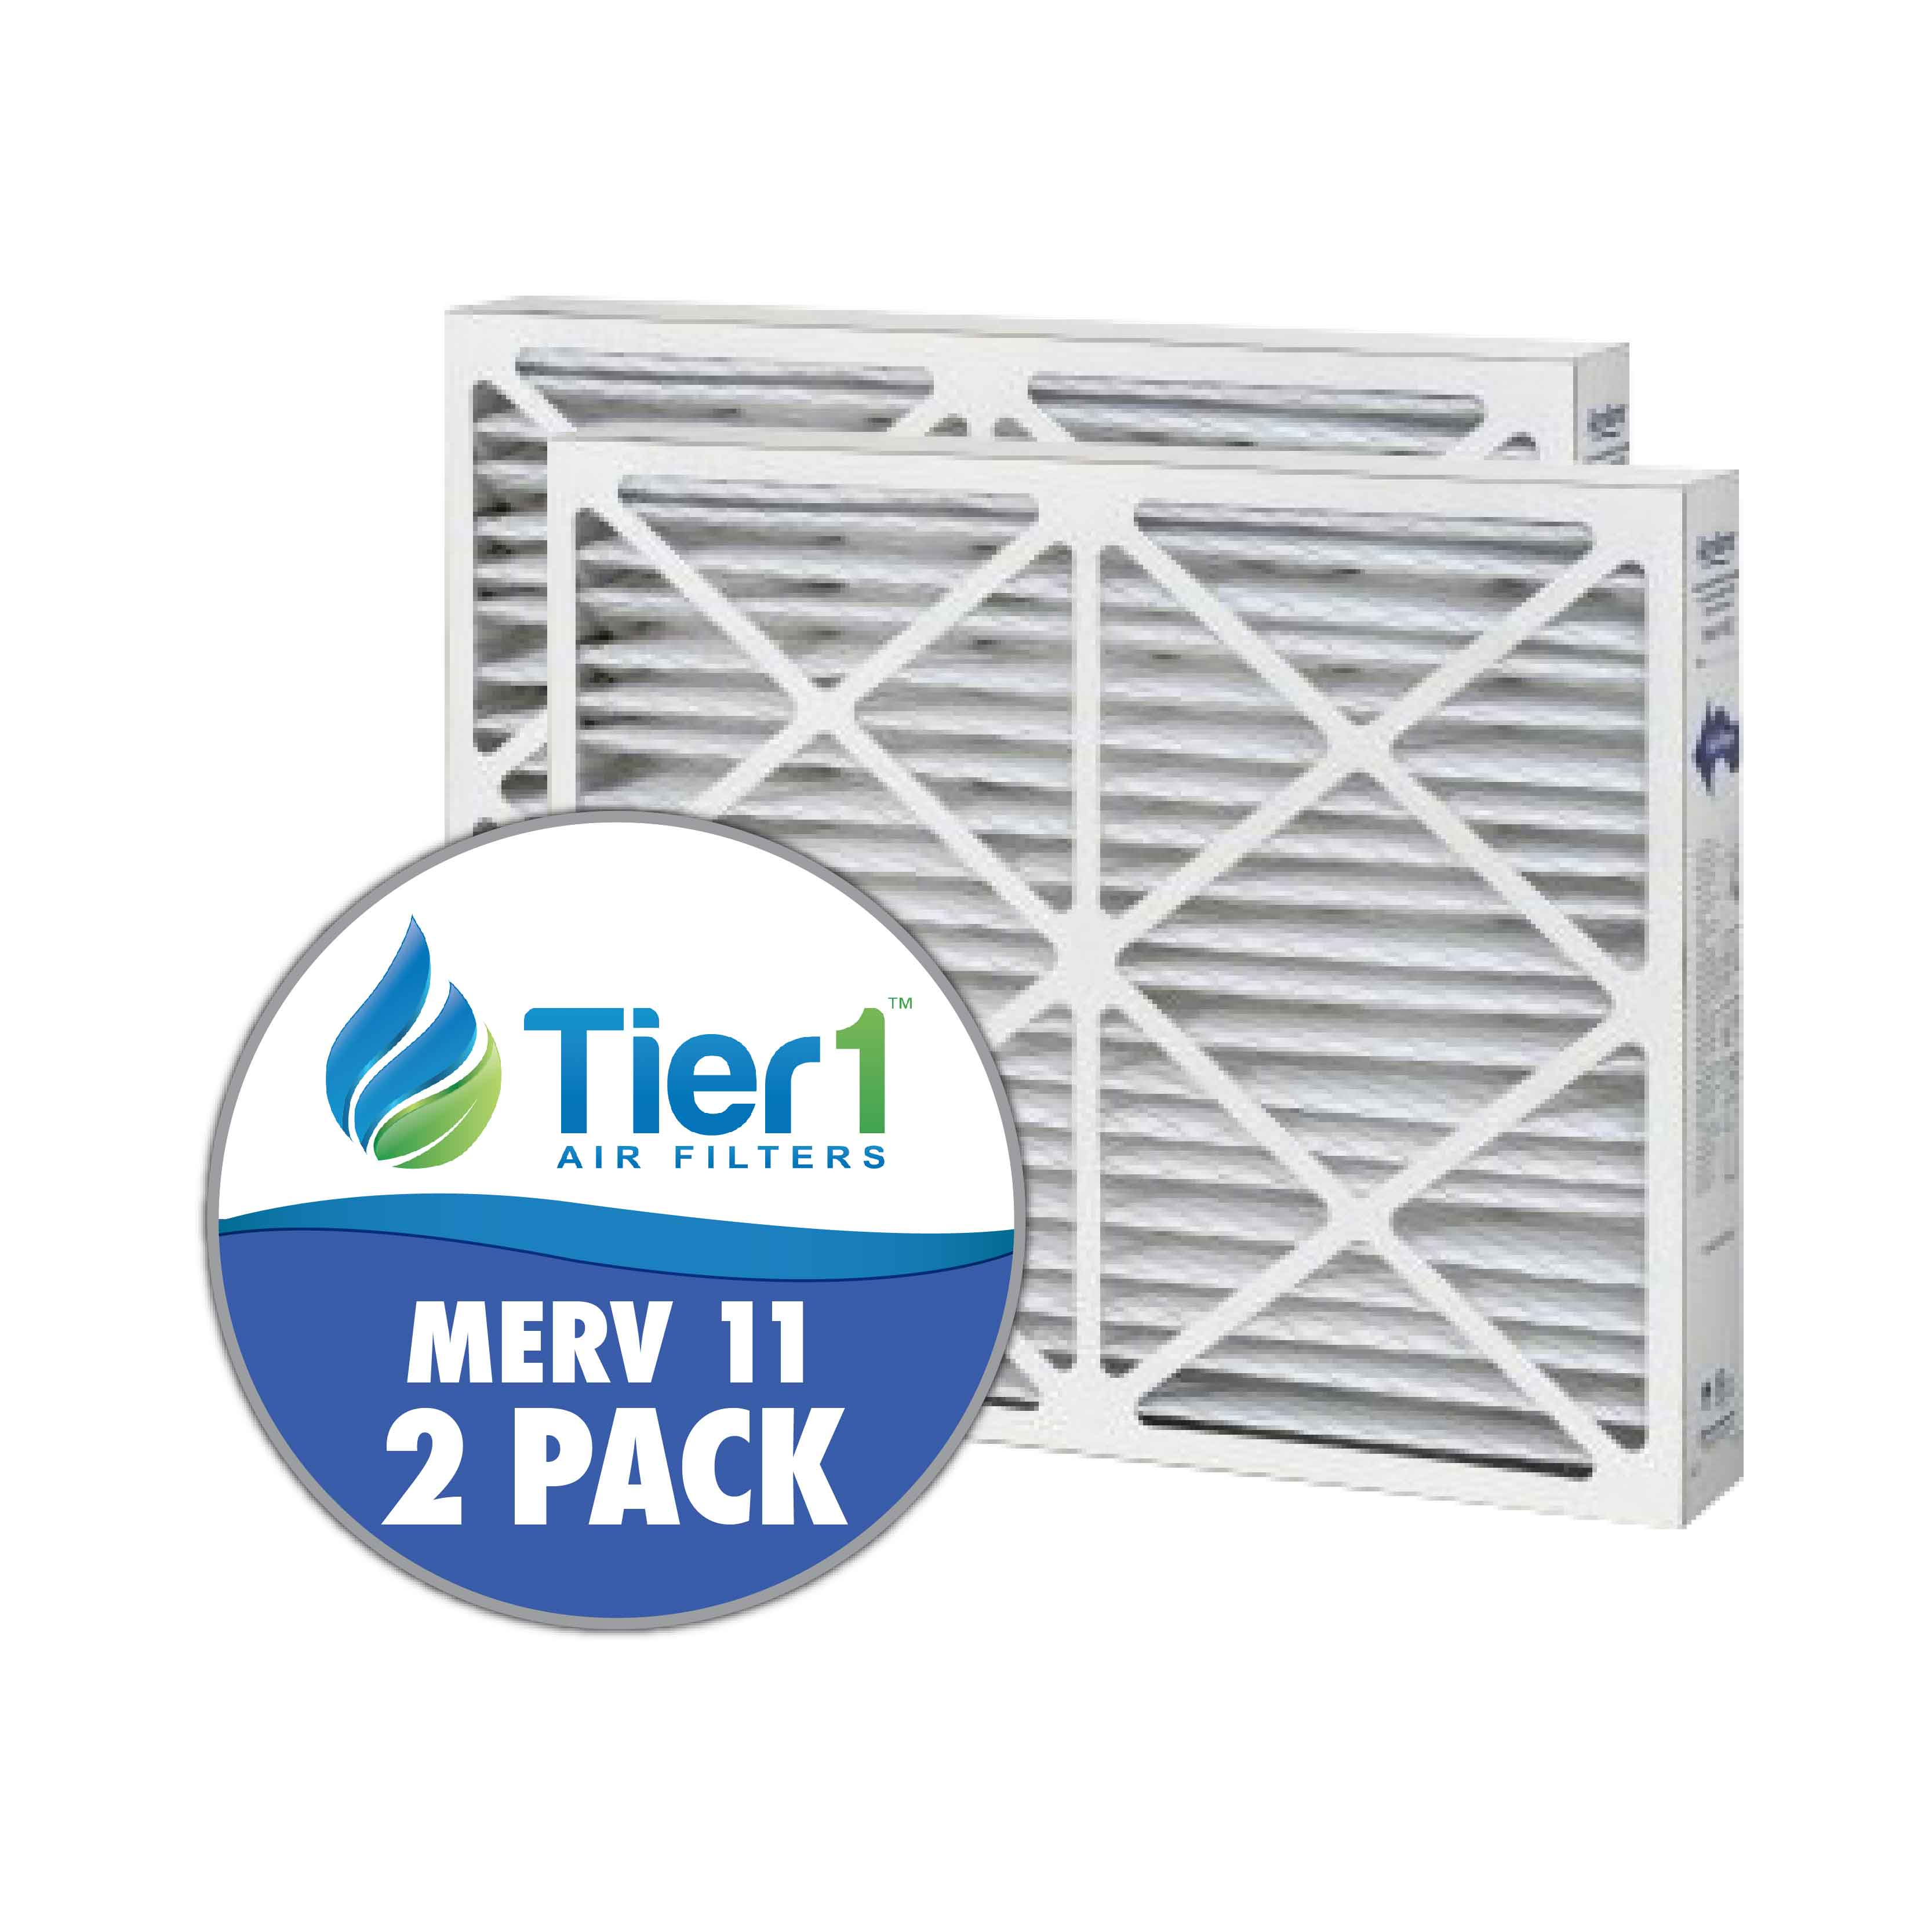 Tier1 brand replacement for Aprilaire #201 - 20 x 25 x 6 - MERV 11 (2-Pack) TIER1-DPFS20X25X6M11